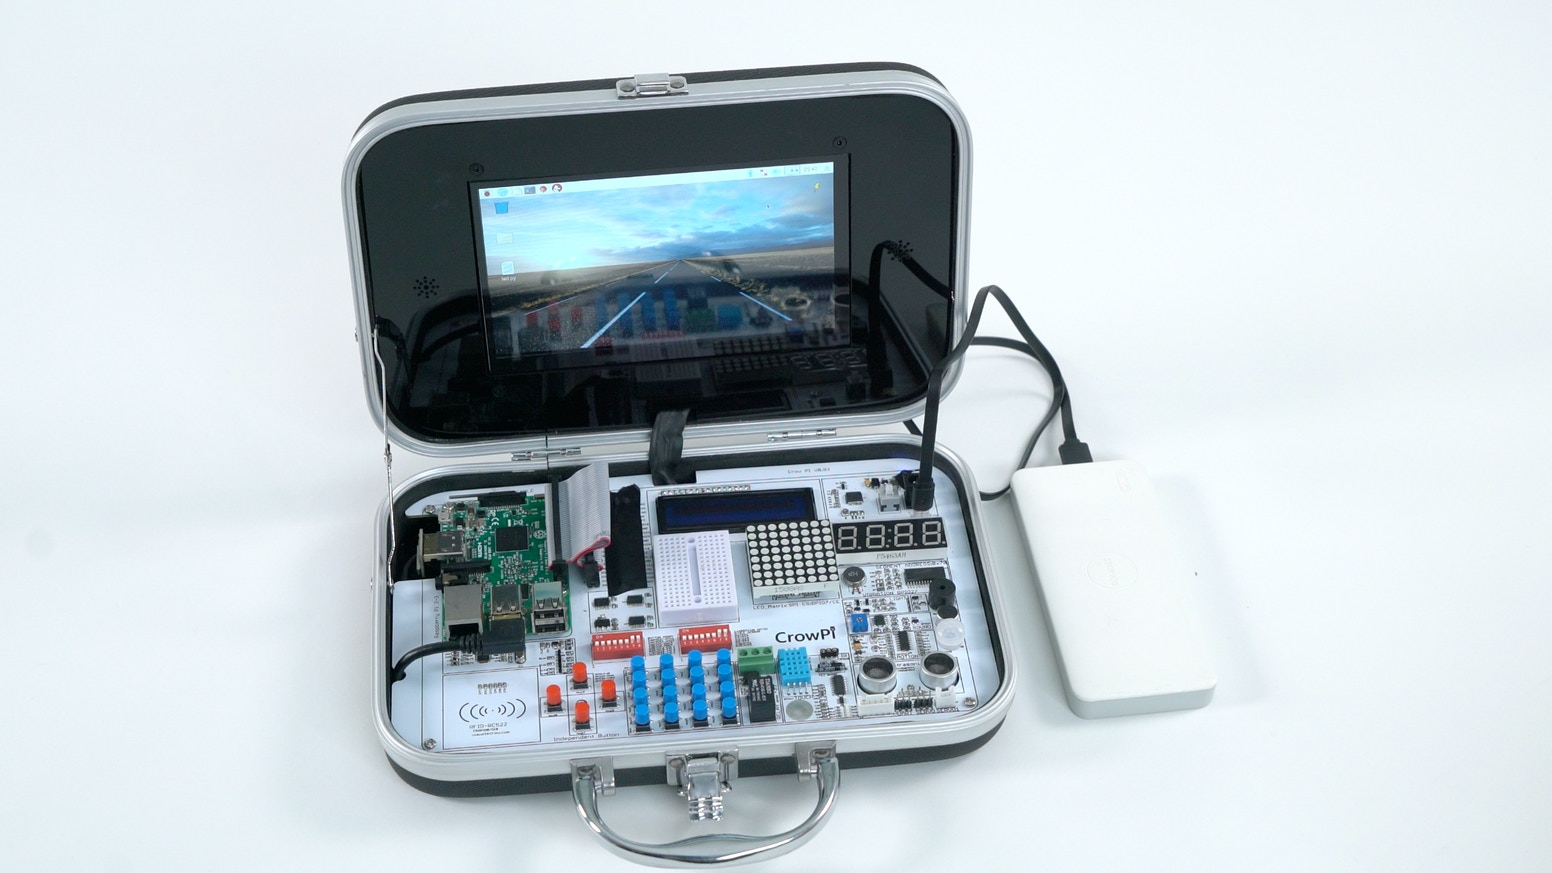 CrowPi is an amazing kit to help you learn computer science, programming, electronics and master Raspberry Pi.